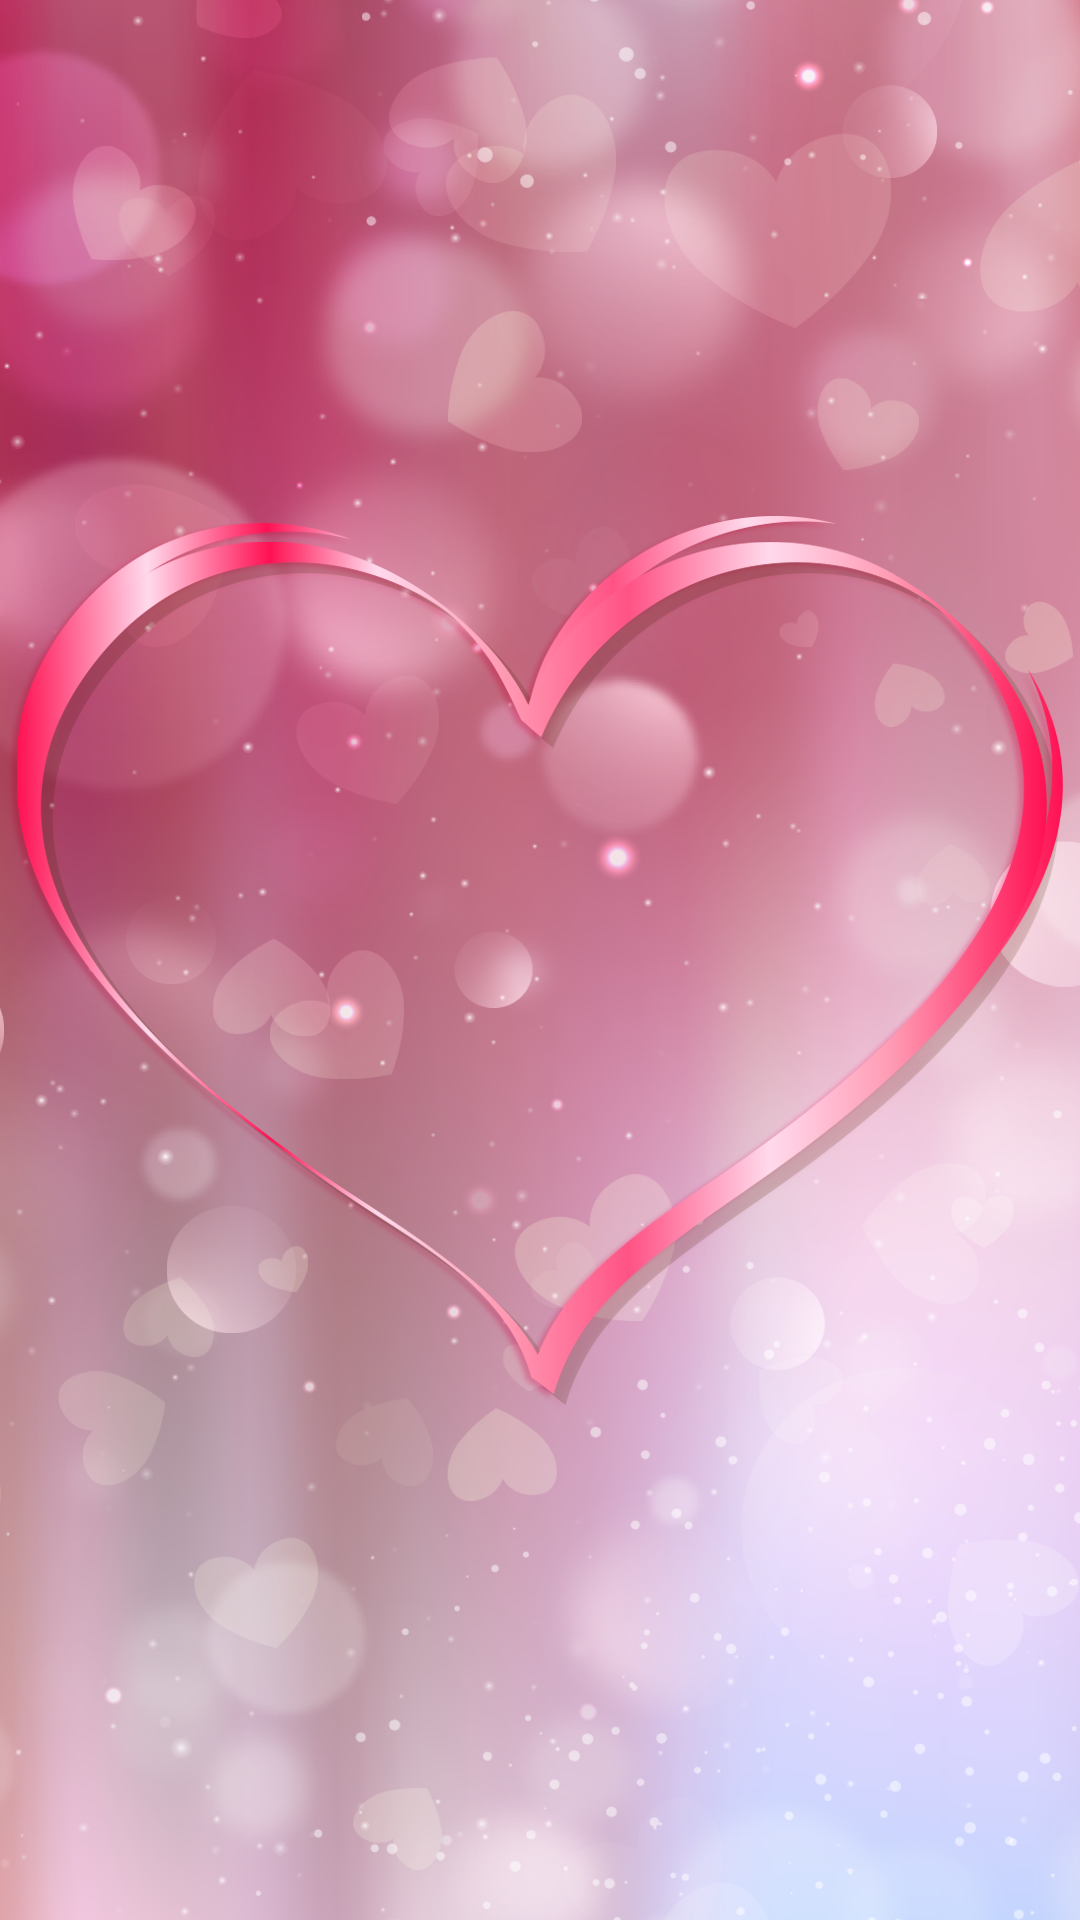 free hd perfect heart iphone wallpaper for download 0203